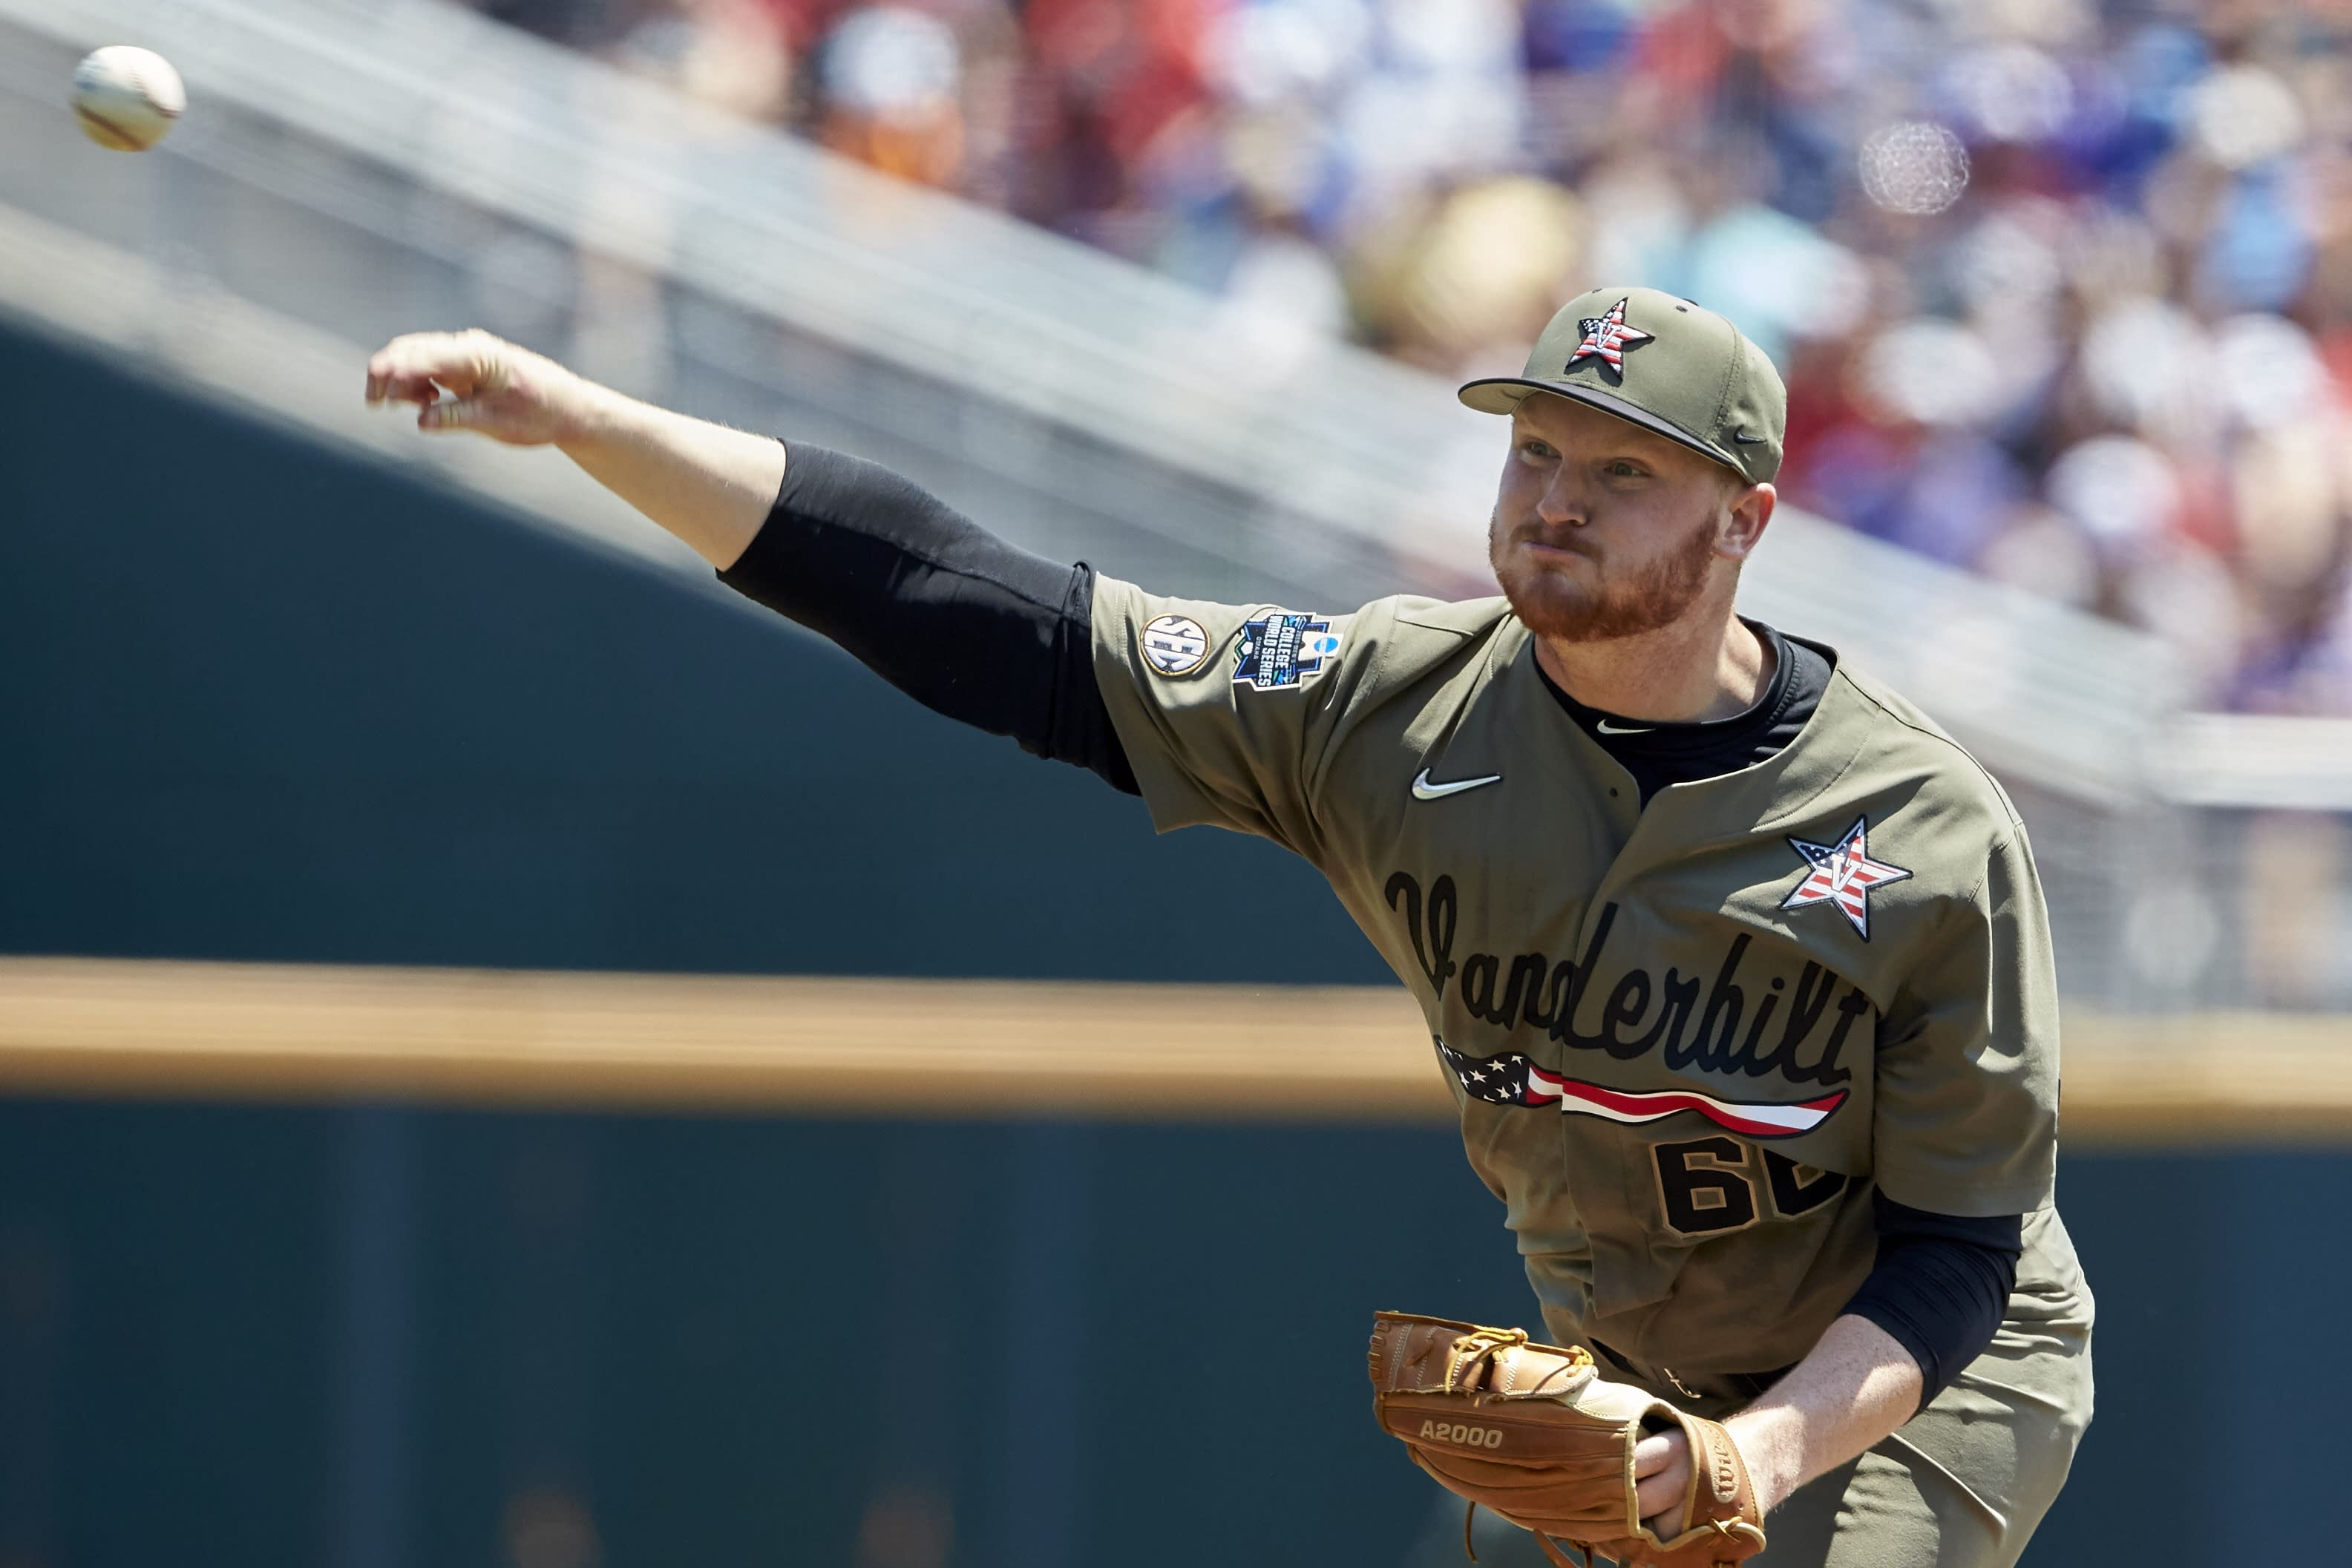 Martin hits 2 HRs, Vanderbilt beat Louisville 3-1 in CWS